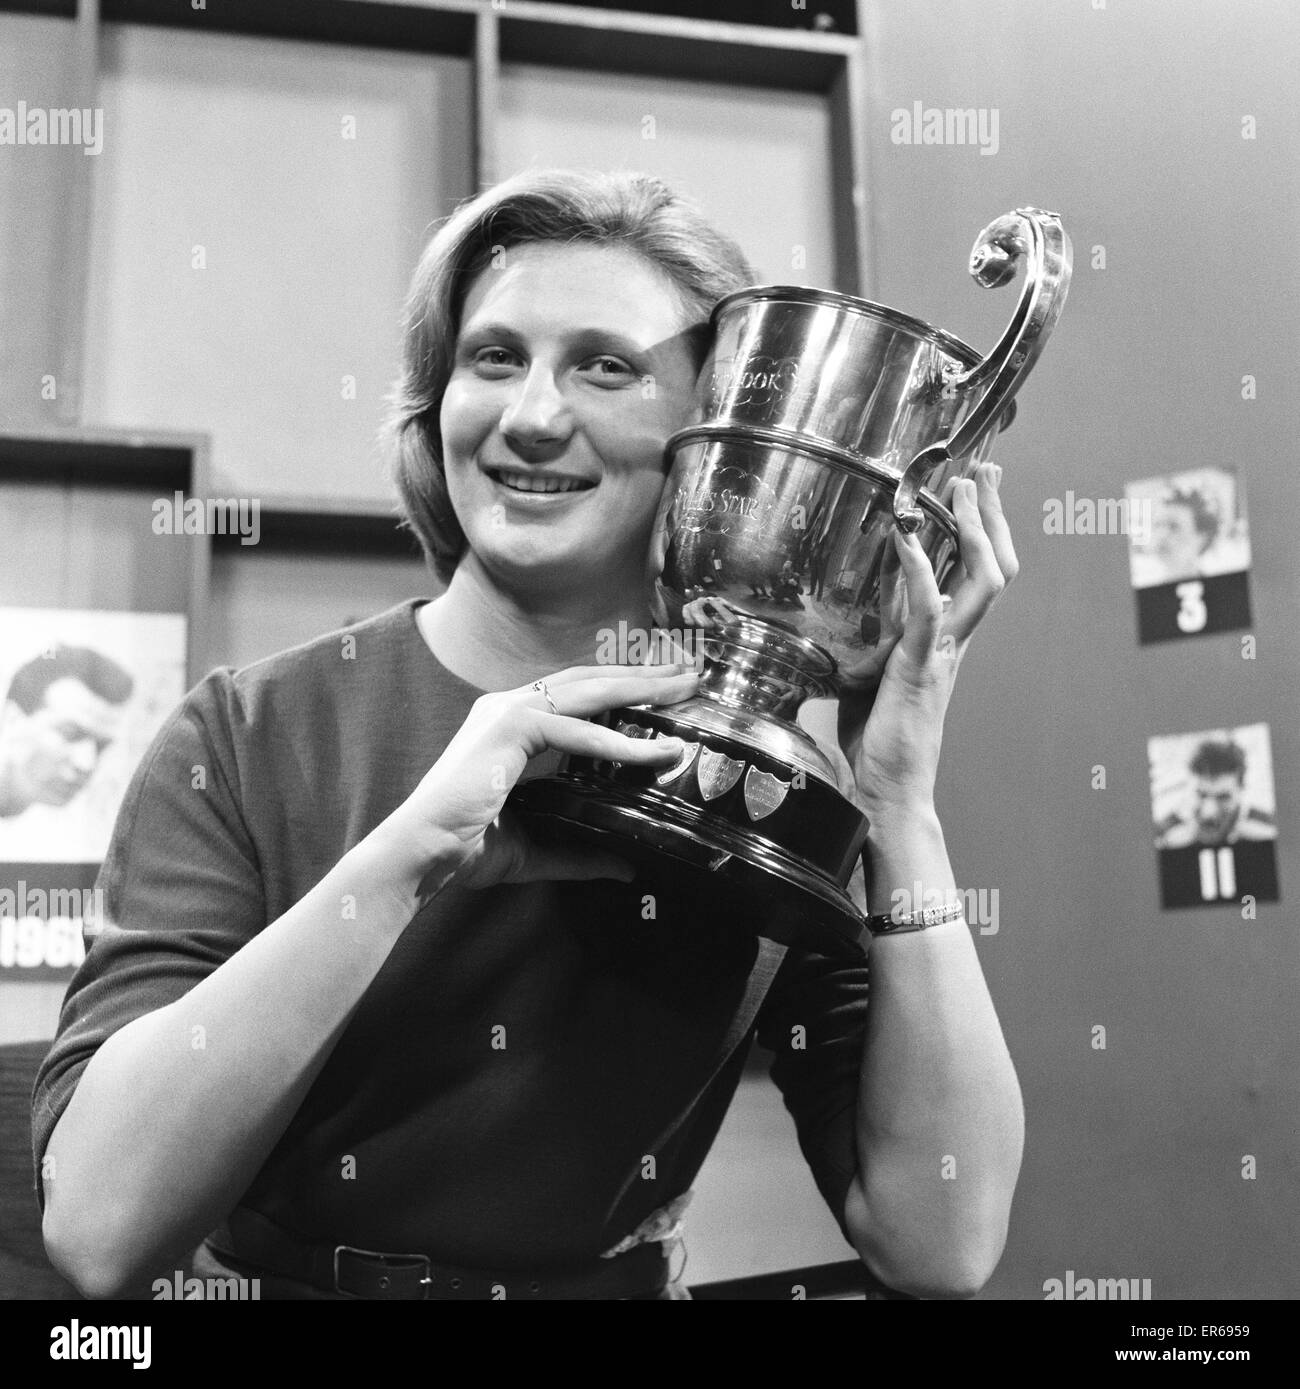 Medalist Black and White Stock s & Alamy